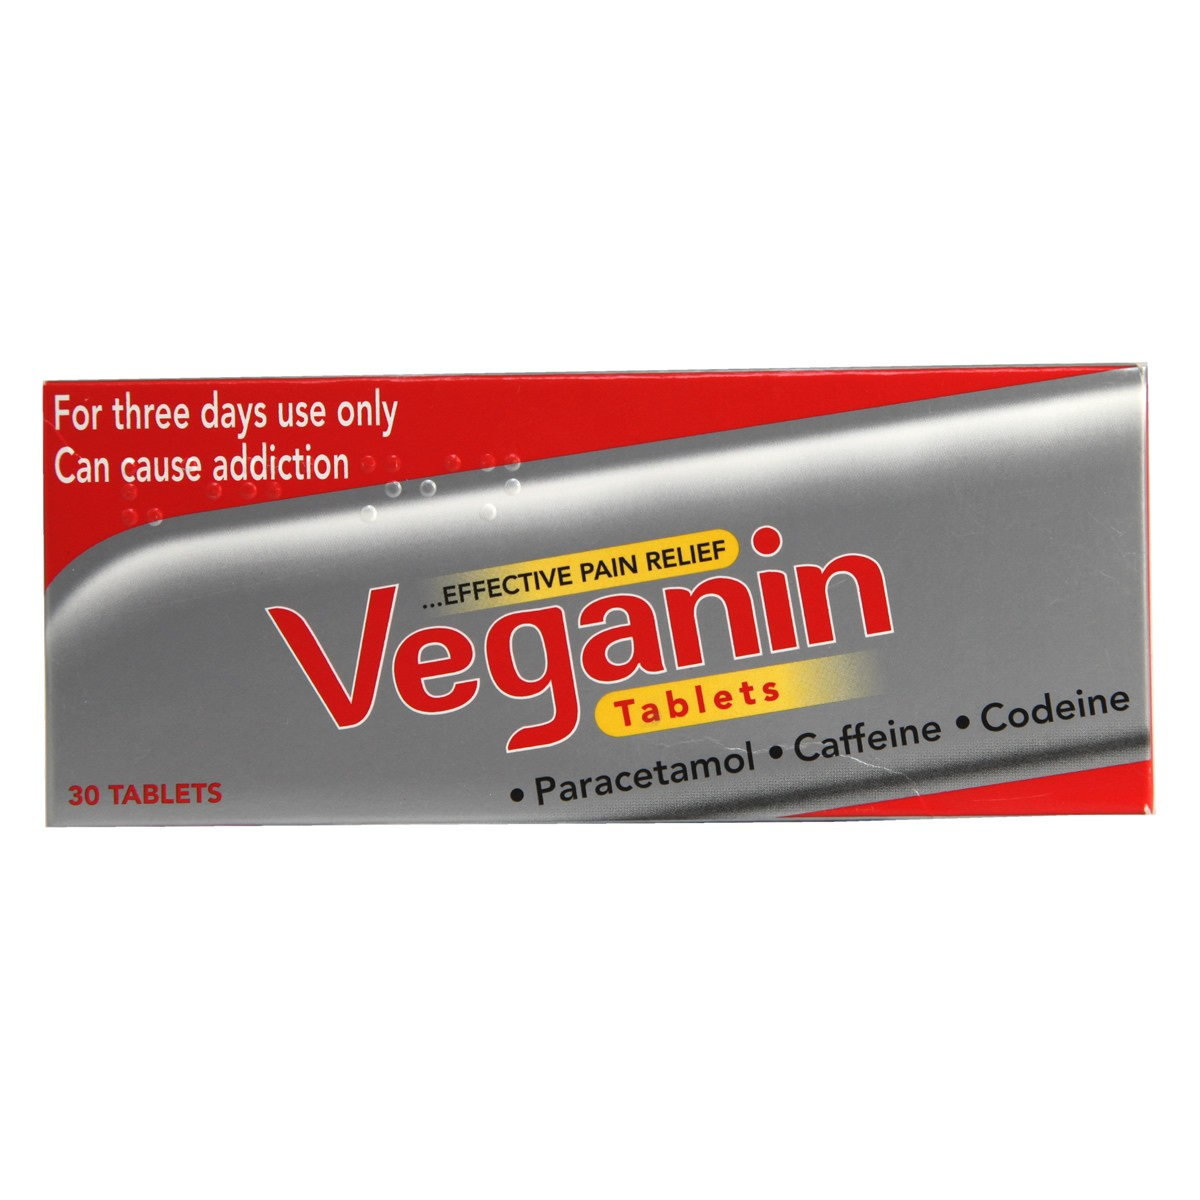 Veganin Tablets